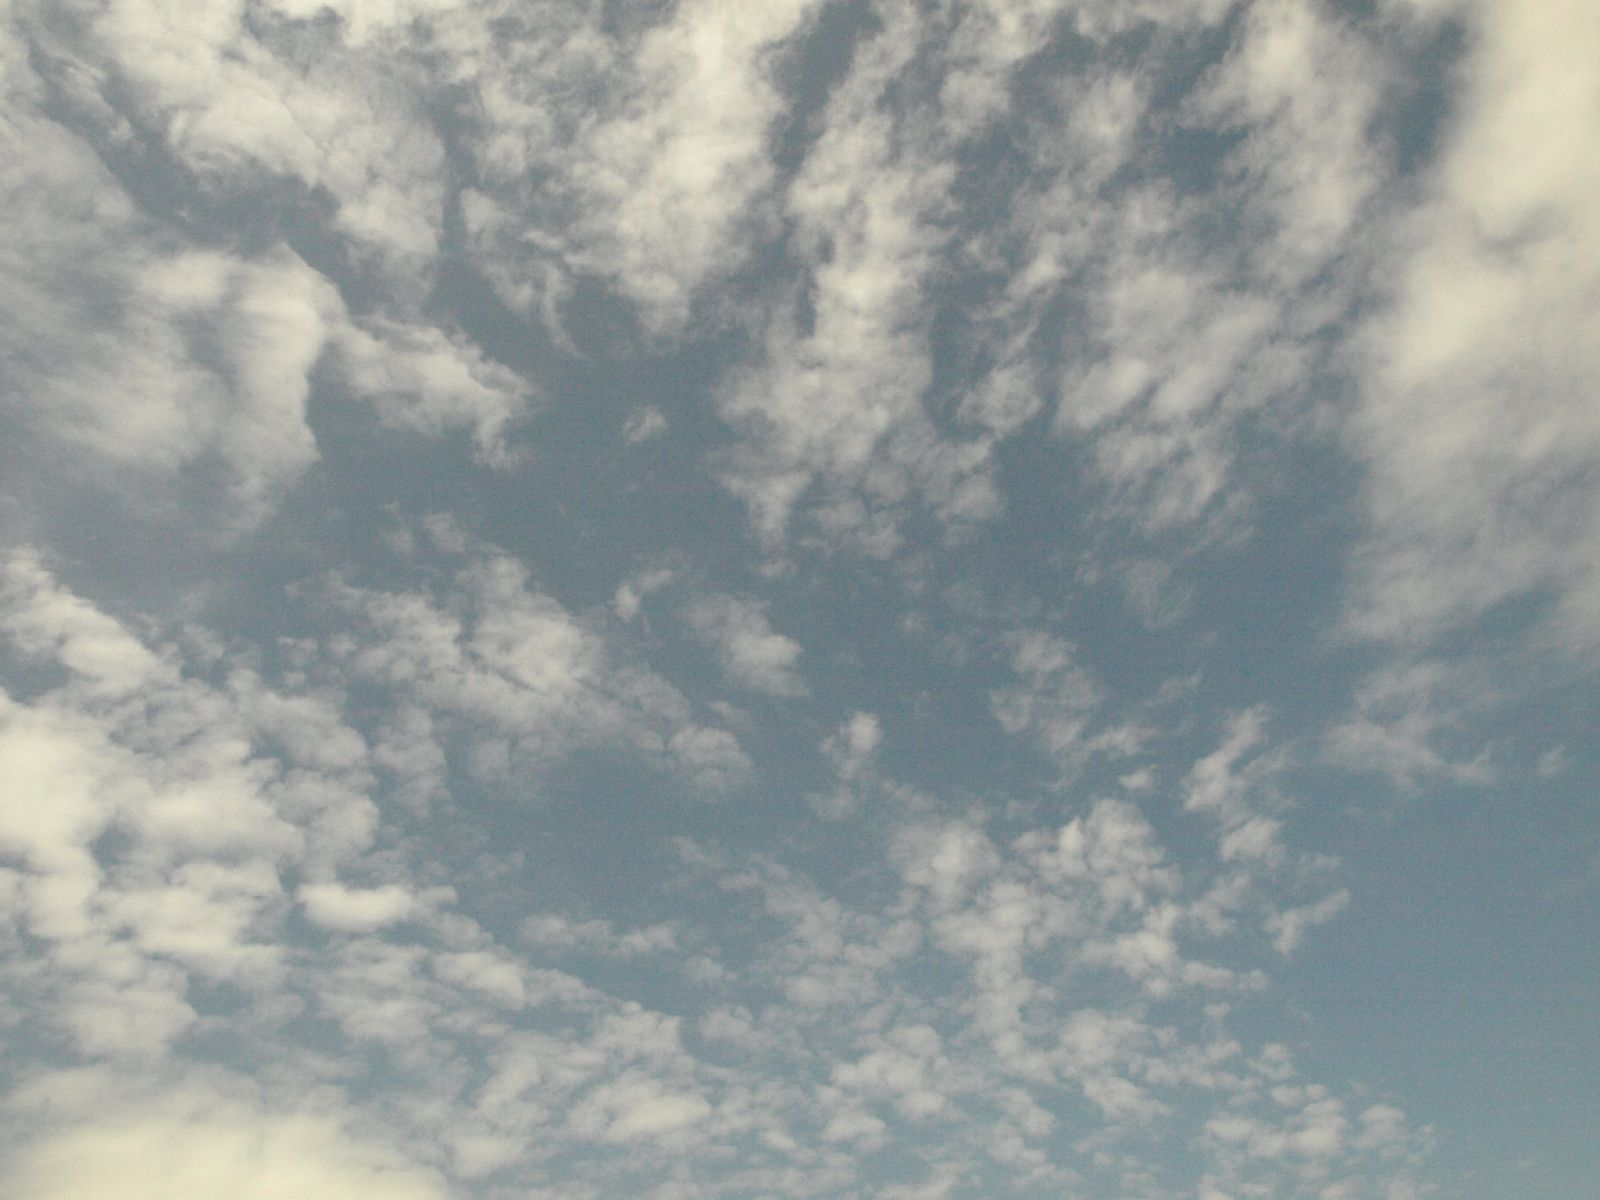 Sky_Clouds_Photo_Texture_A_P4101915